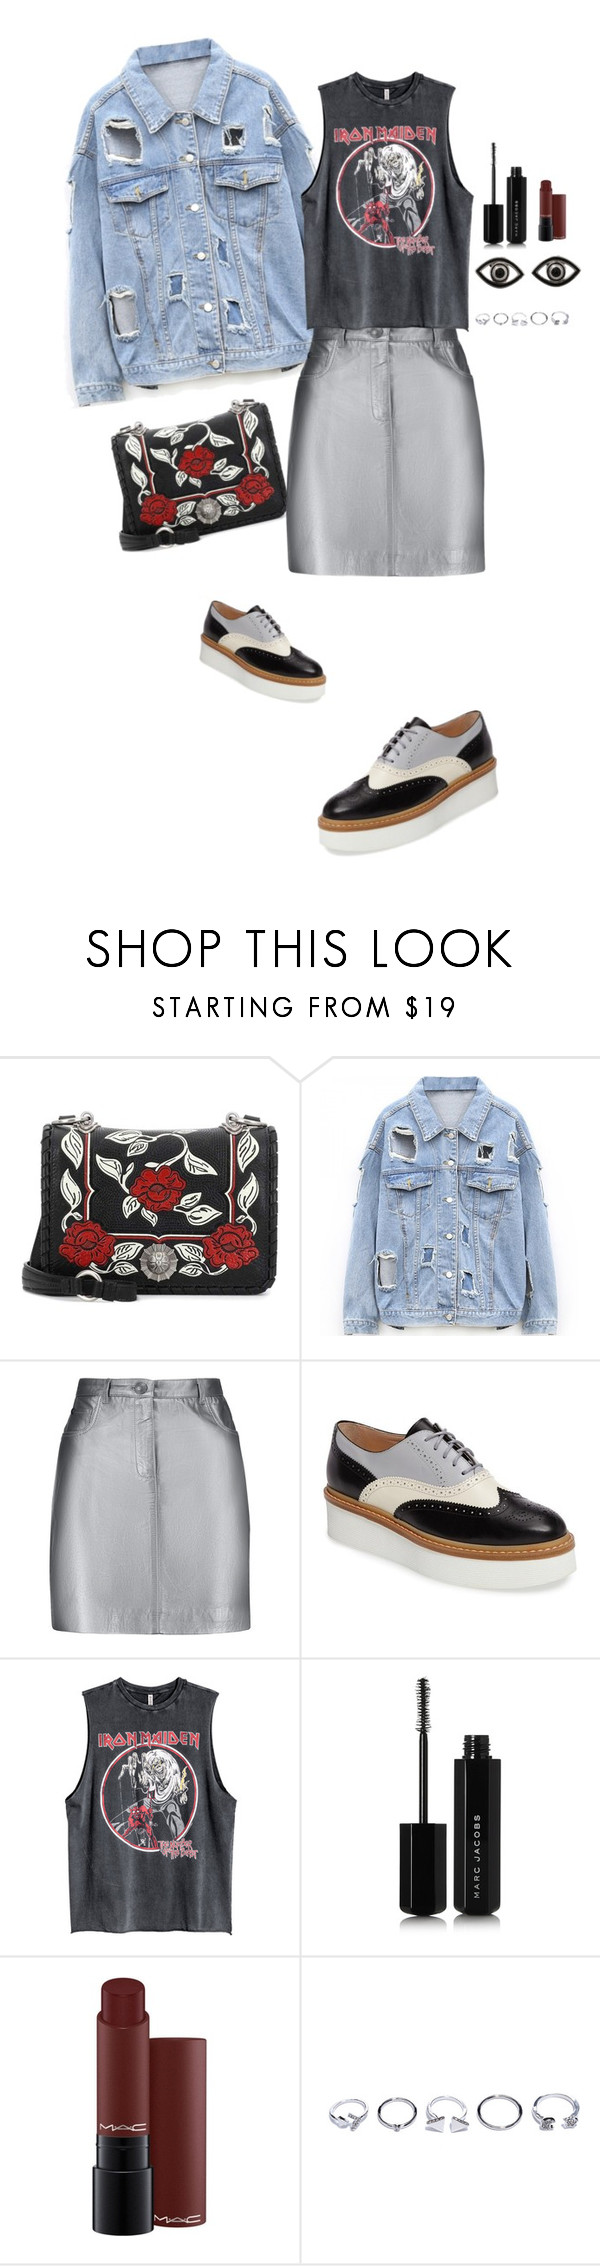 """dont look to the eyes of a stranger!"" by girlyskullsam ❤ liked on Polyvore featuring Miu Miu, Pierre Balmain, Tod's, Marc Jacobs, MAC Cosmetics, GUESS and Netali Nissim"